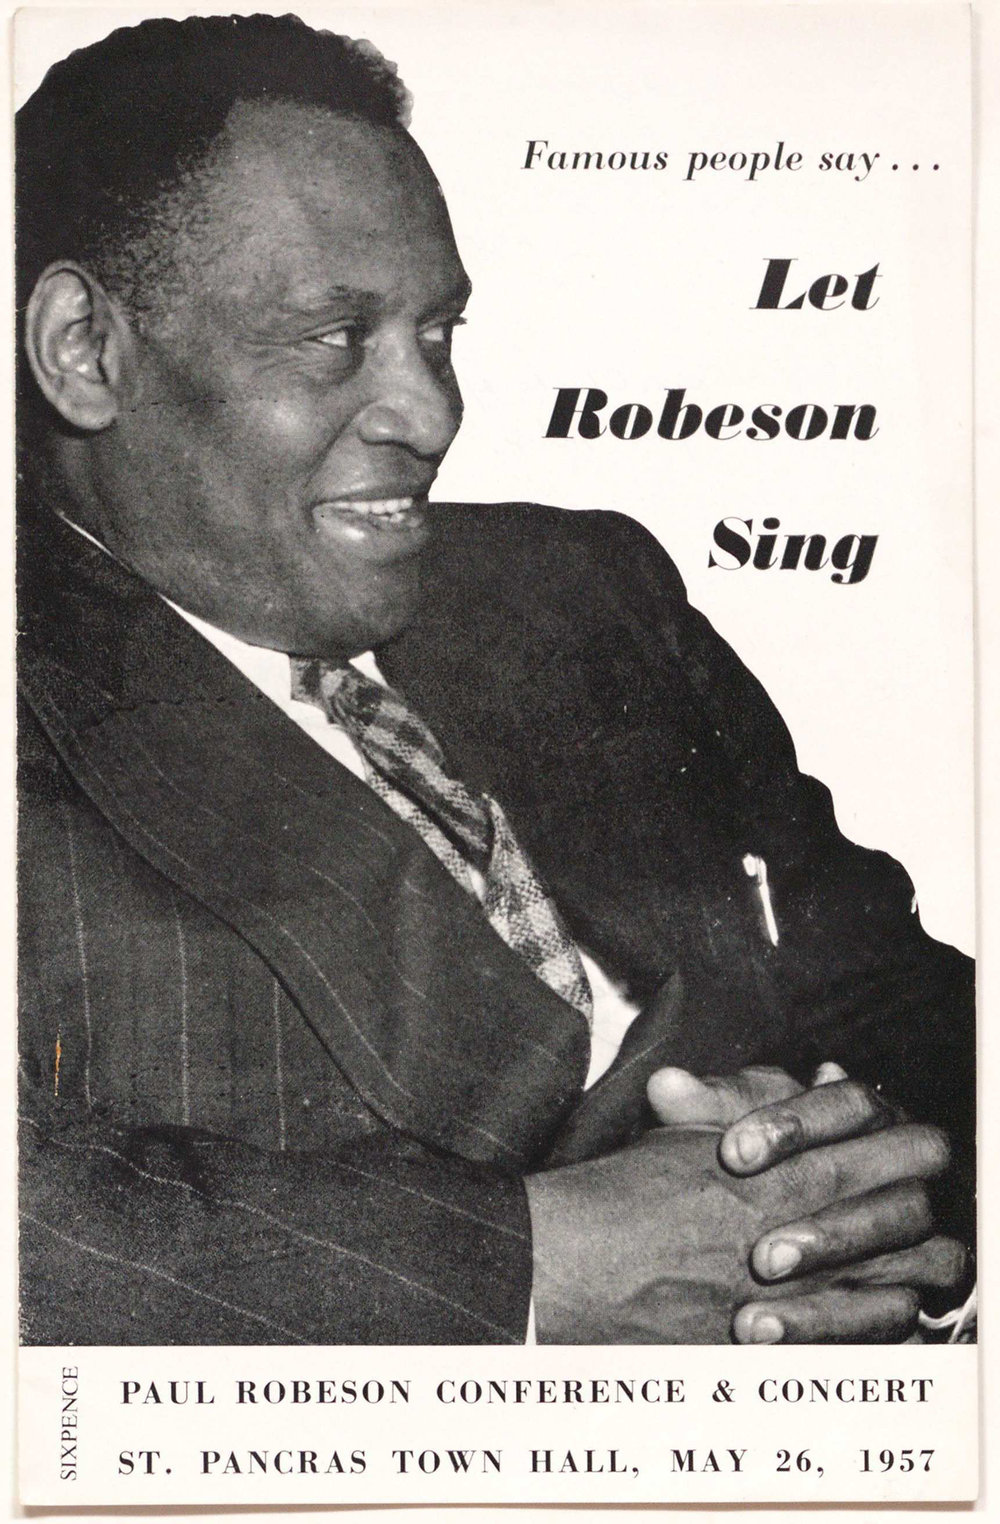 Booklet publicising the Paul Robeson Conference and Concert held in 1957. It includes comments in support of the campaign from public figures including Benjamin Britten, Kingsley Amis and John Betjeman.  Reproduced by permission of Modern Records Centre, University of Warwick. Included in the papers of Clive Jenkins; document reference:  MSS.79/6/CJ/3/110